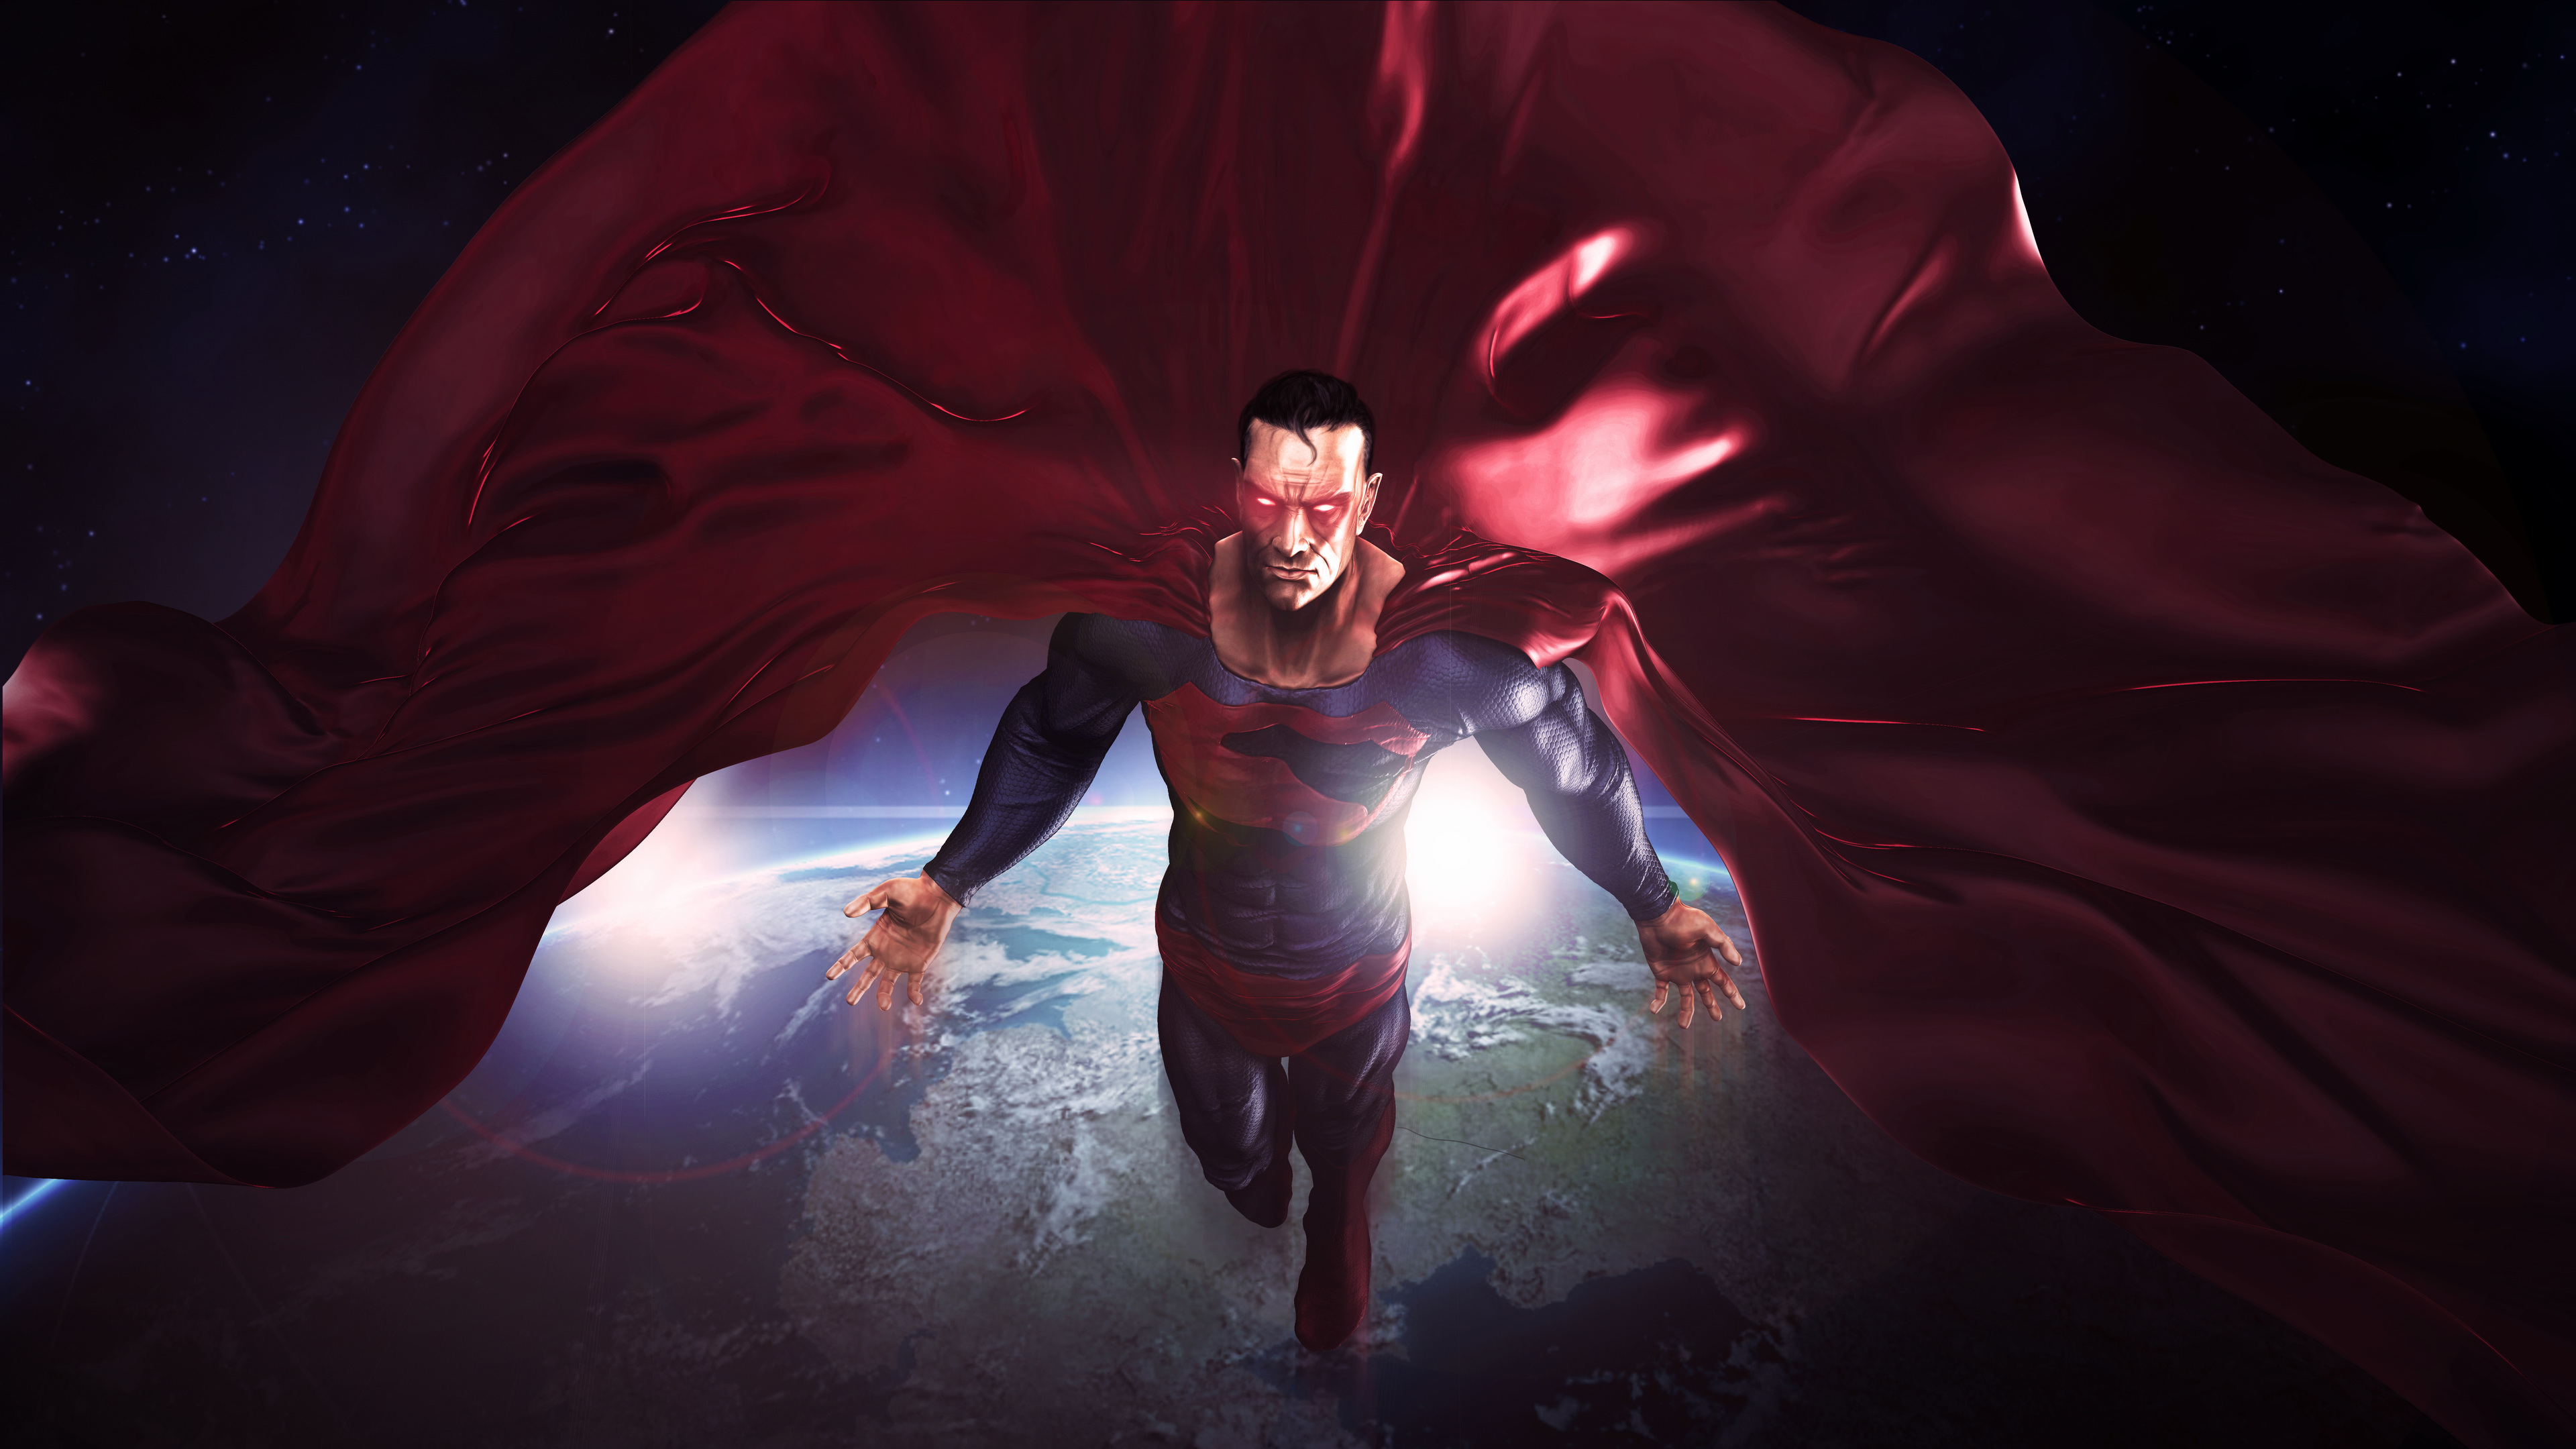 superman in the space red cape flying artwork 8k 1536523873 - Superman In The Space Red Cape Flying Artwork 8k - superman wallpapers, superheroes wallpapers, hd-wallpapers, digital art wallpapers, deviantart wallpapers, artwork wallpapers, artist wallpapers, 8k wallpapers, 5k wallpapers, 4k-wallpapers